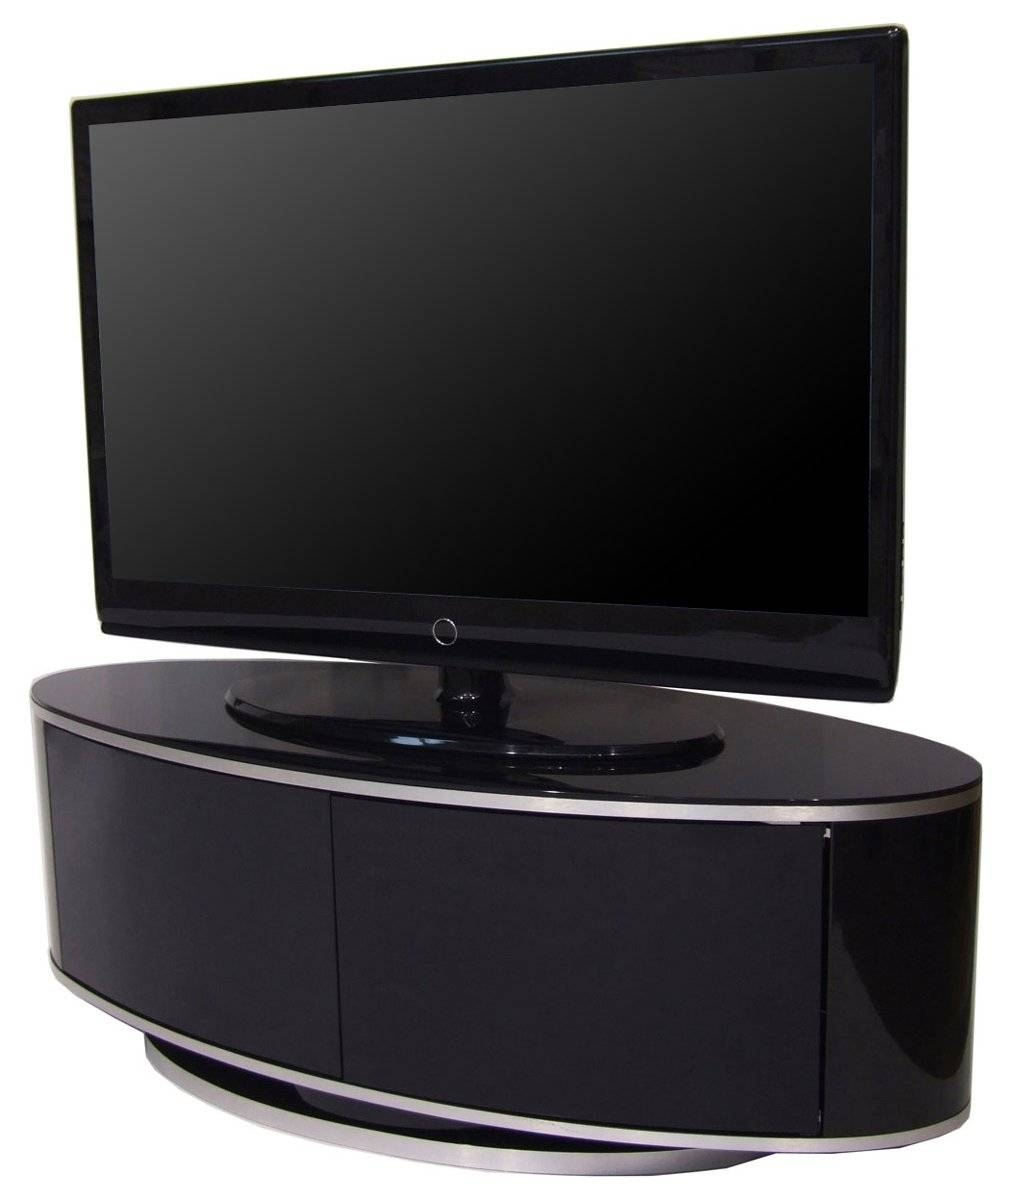 Tv Stands | Tv Units & Cabinets | The Plasma Centre Regarding Shiny Black Tv Stands (View 15 of 15)